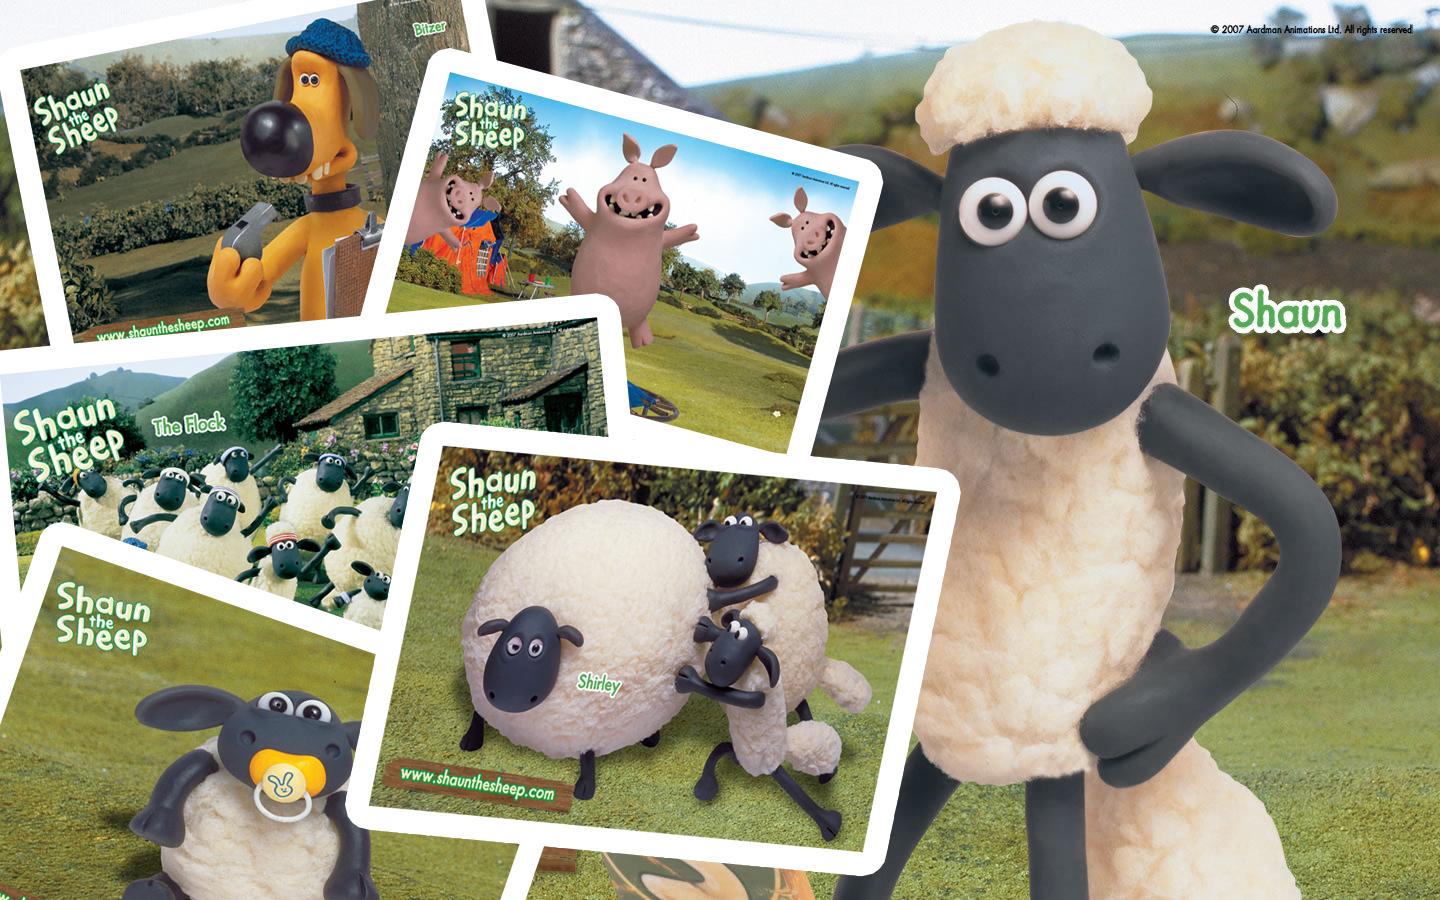 Shaun the Sheep shaun and friends fan art